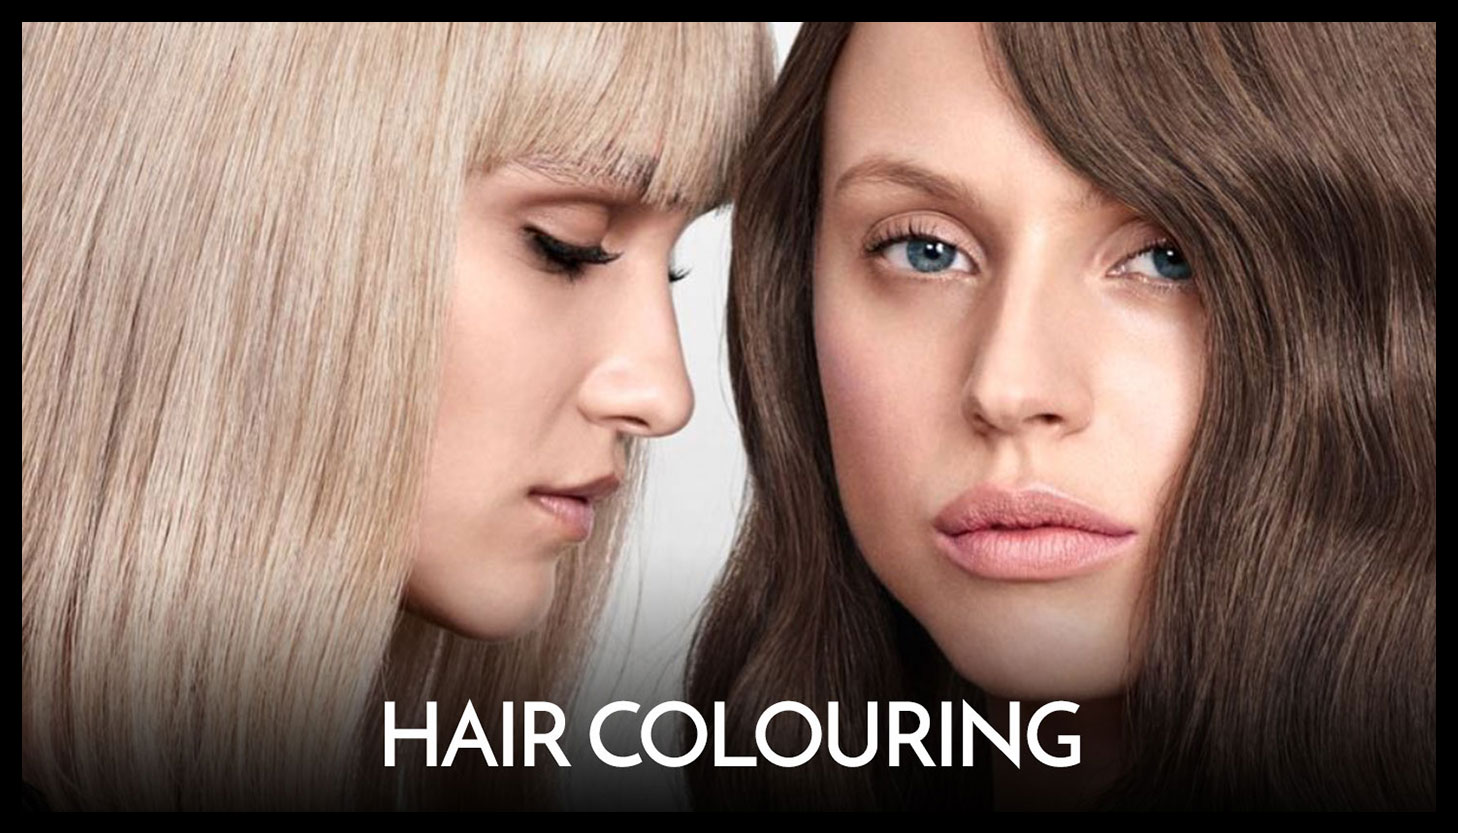 Hair-colouring-hover